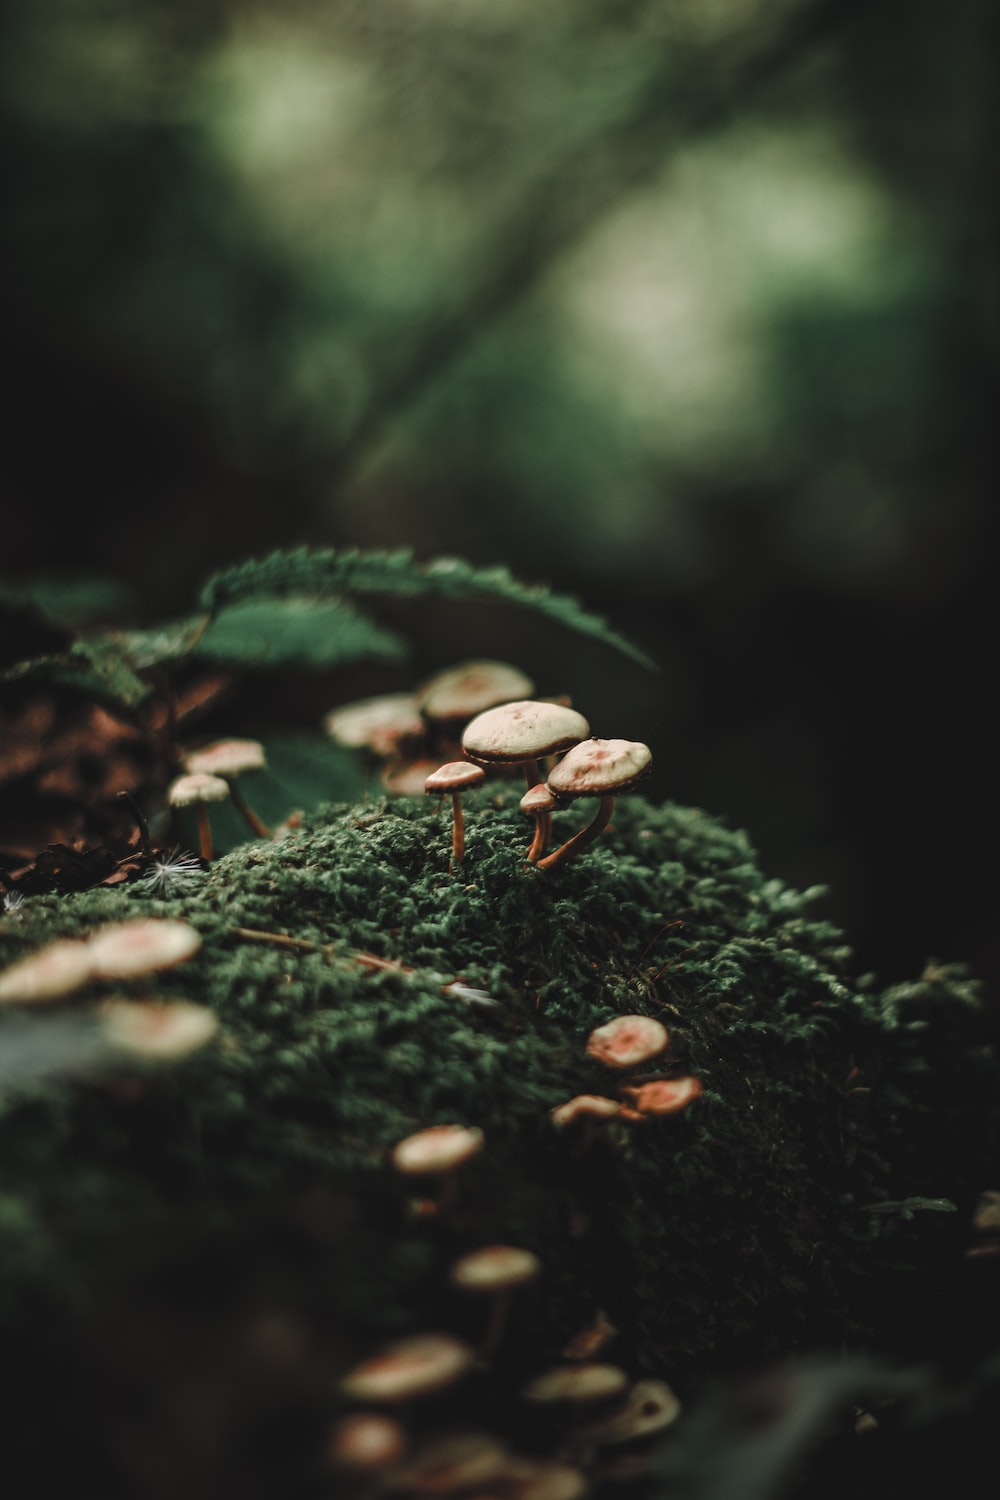 selective focus photography of mushroom